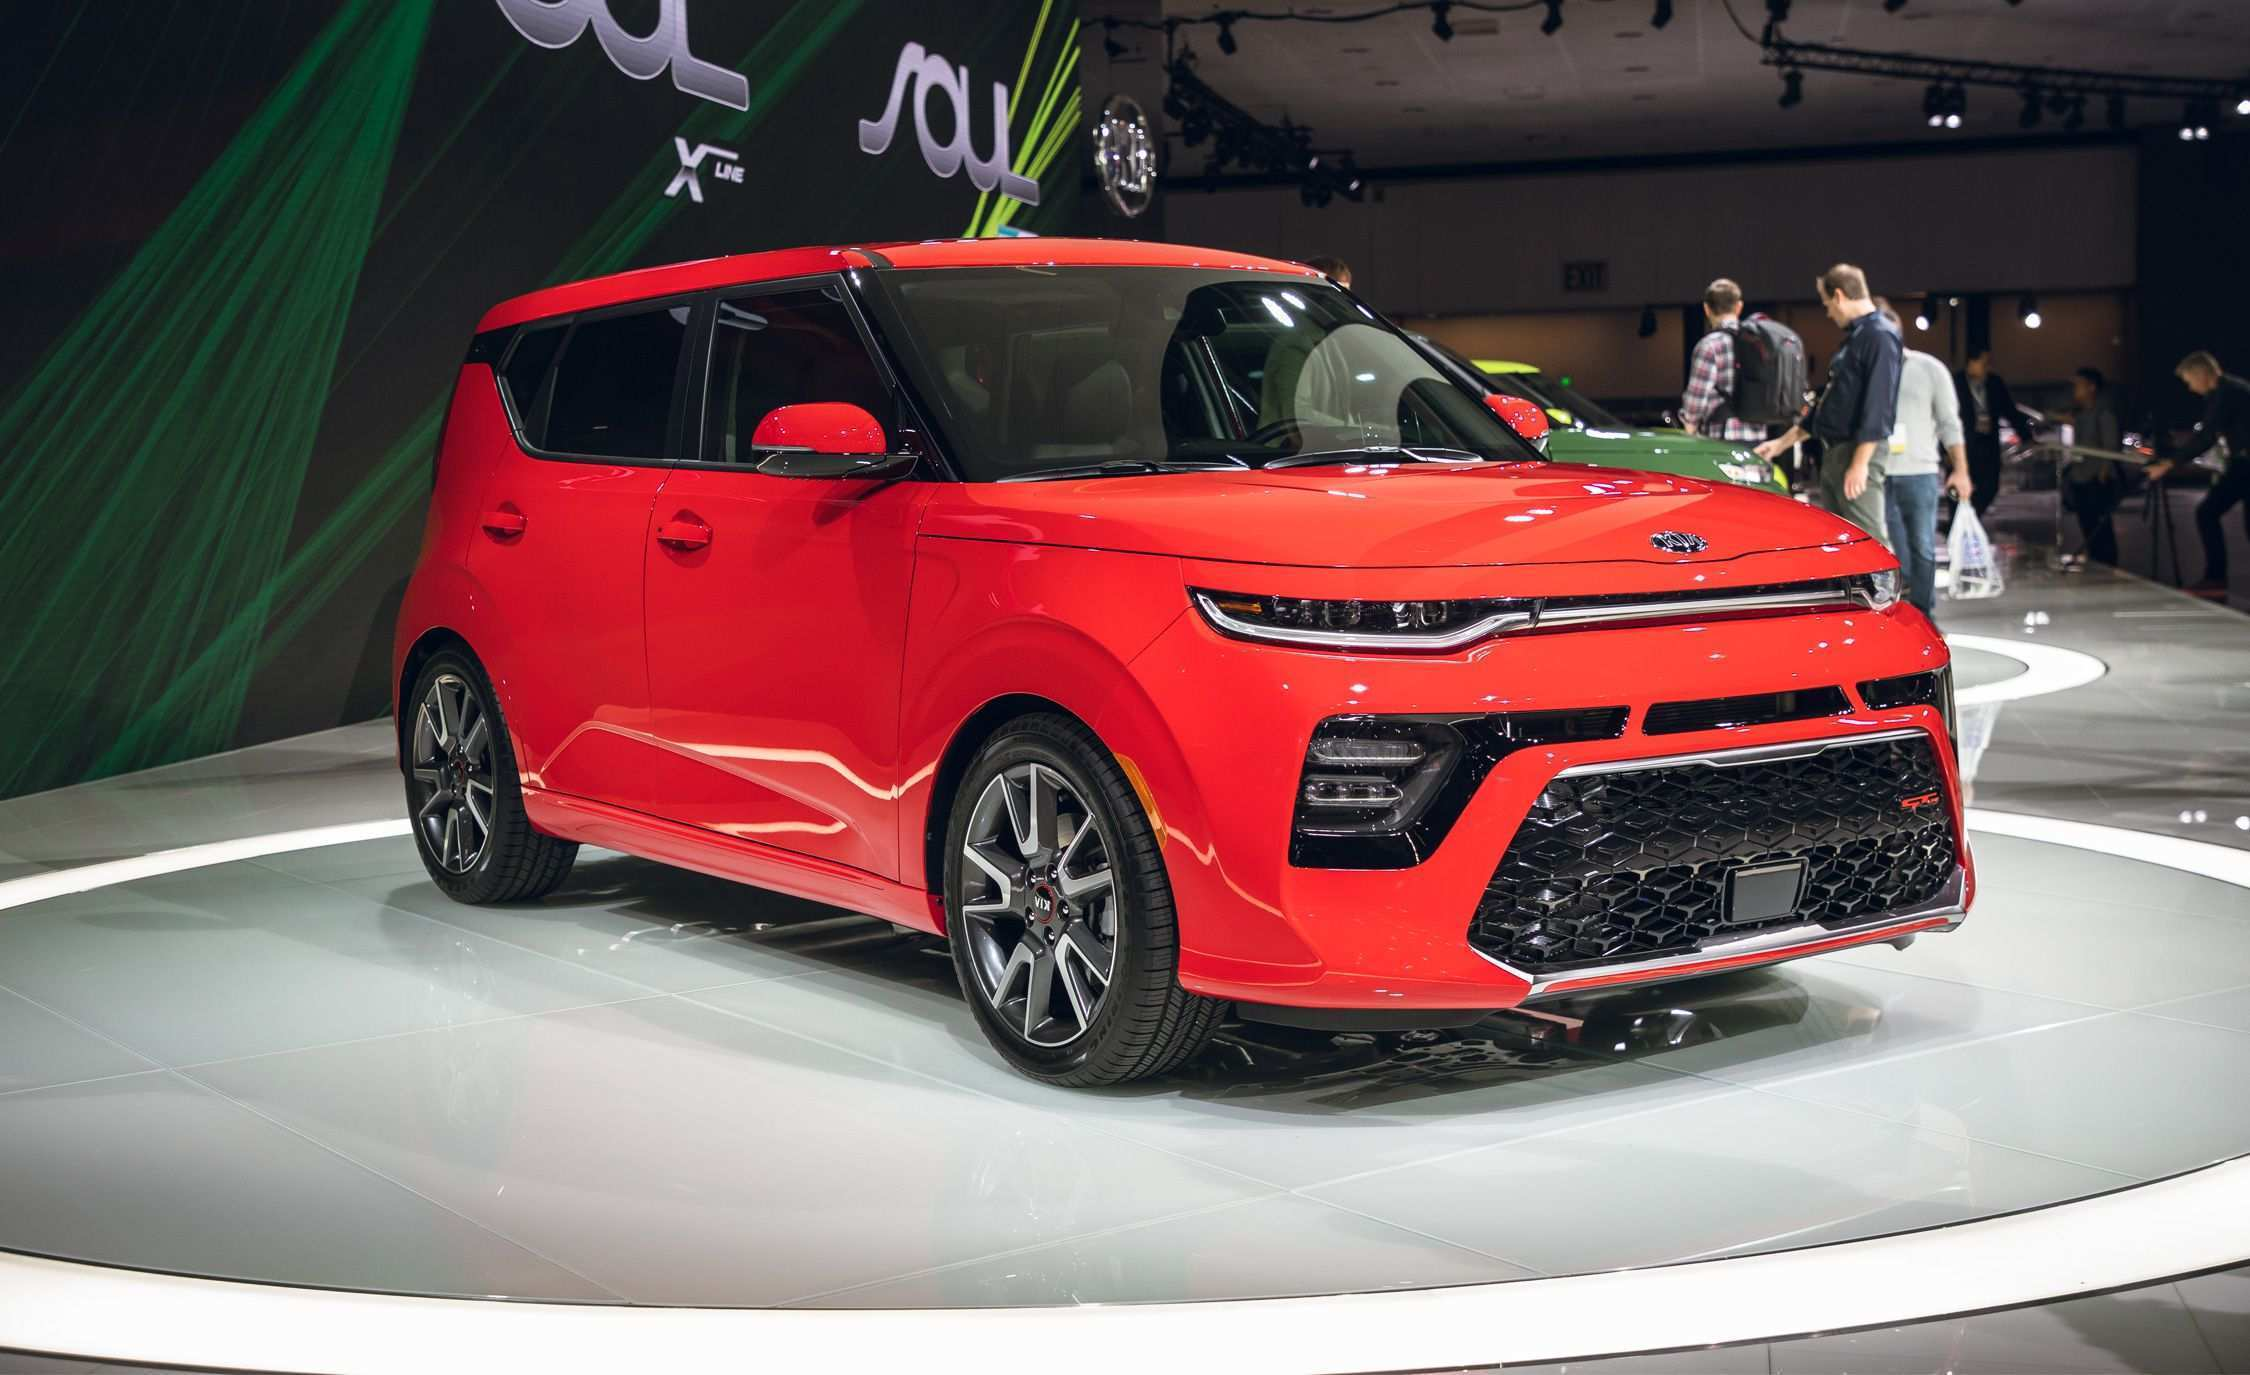 69 New 2020 All Kia Soul Awd Release Date And Concept